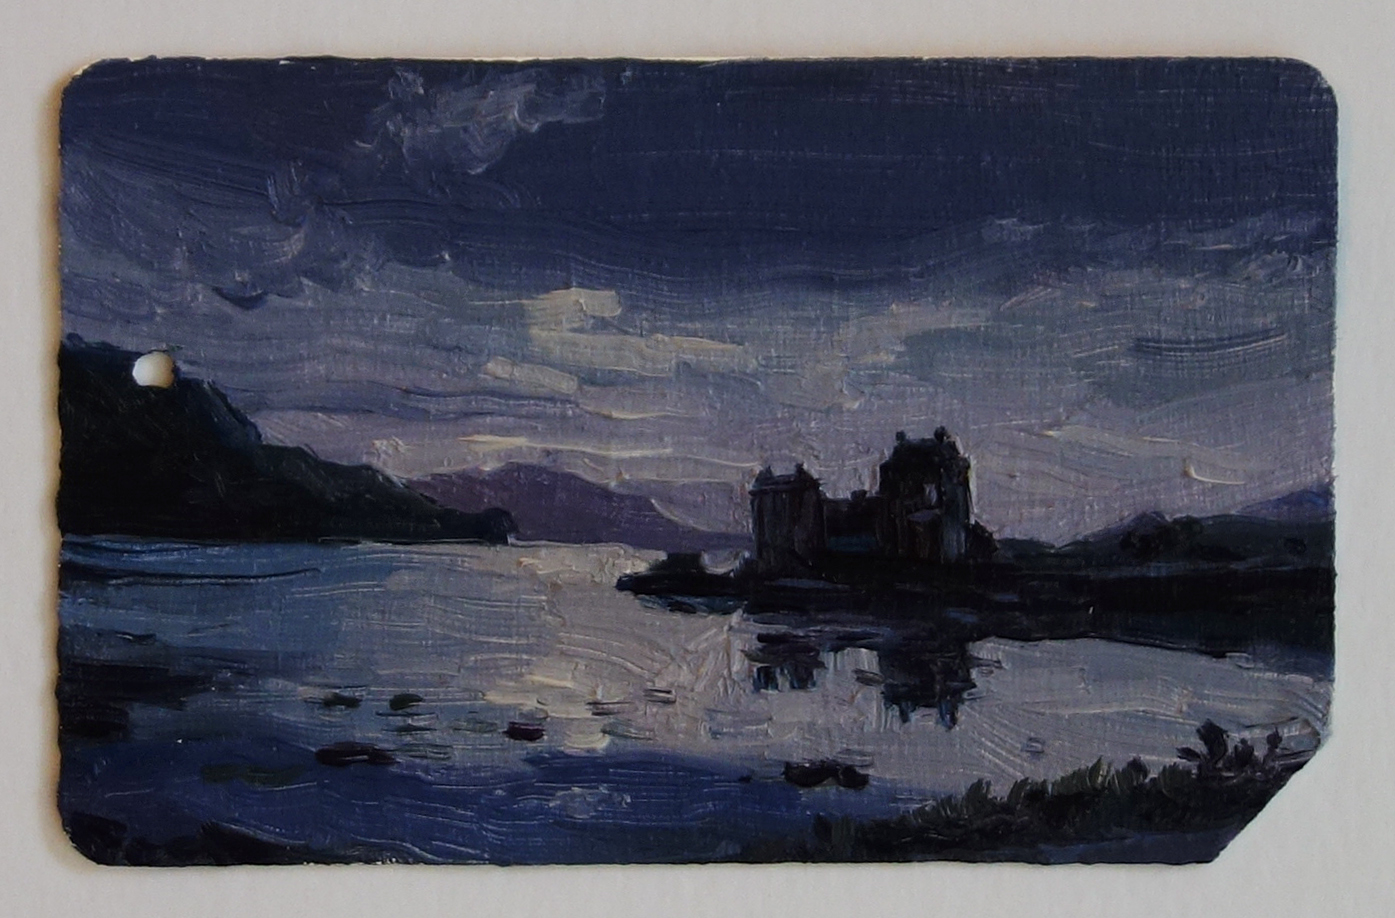 Eilean_Donan_Castle_Scotland_Oil_on_NYC_Metrocard_Painting_2x3_Maud_Taber_Thomas_Washington_DC_Georgetown